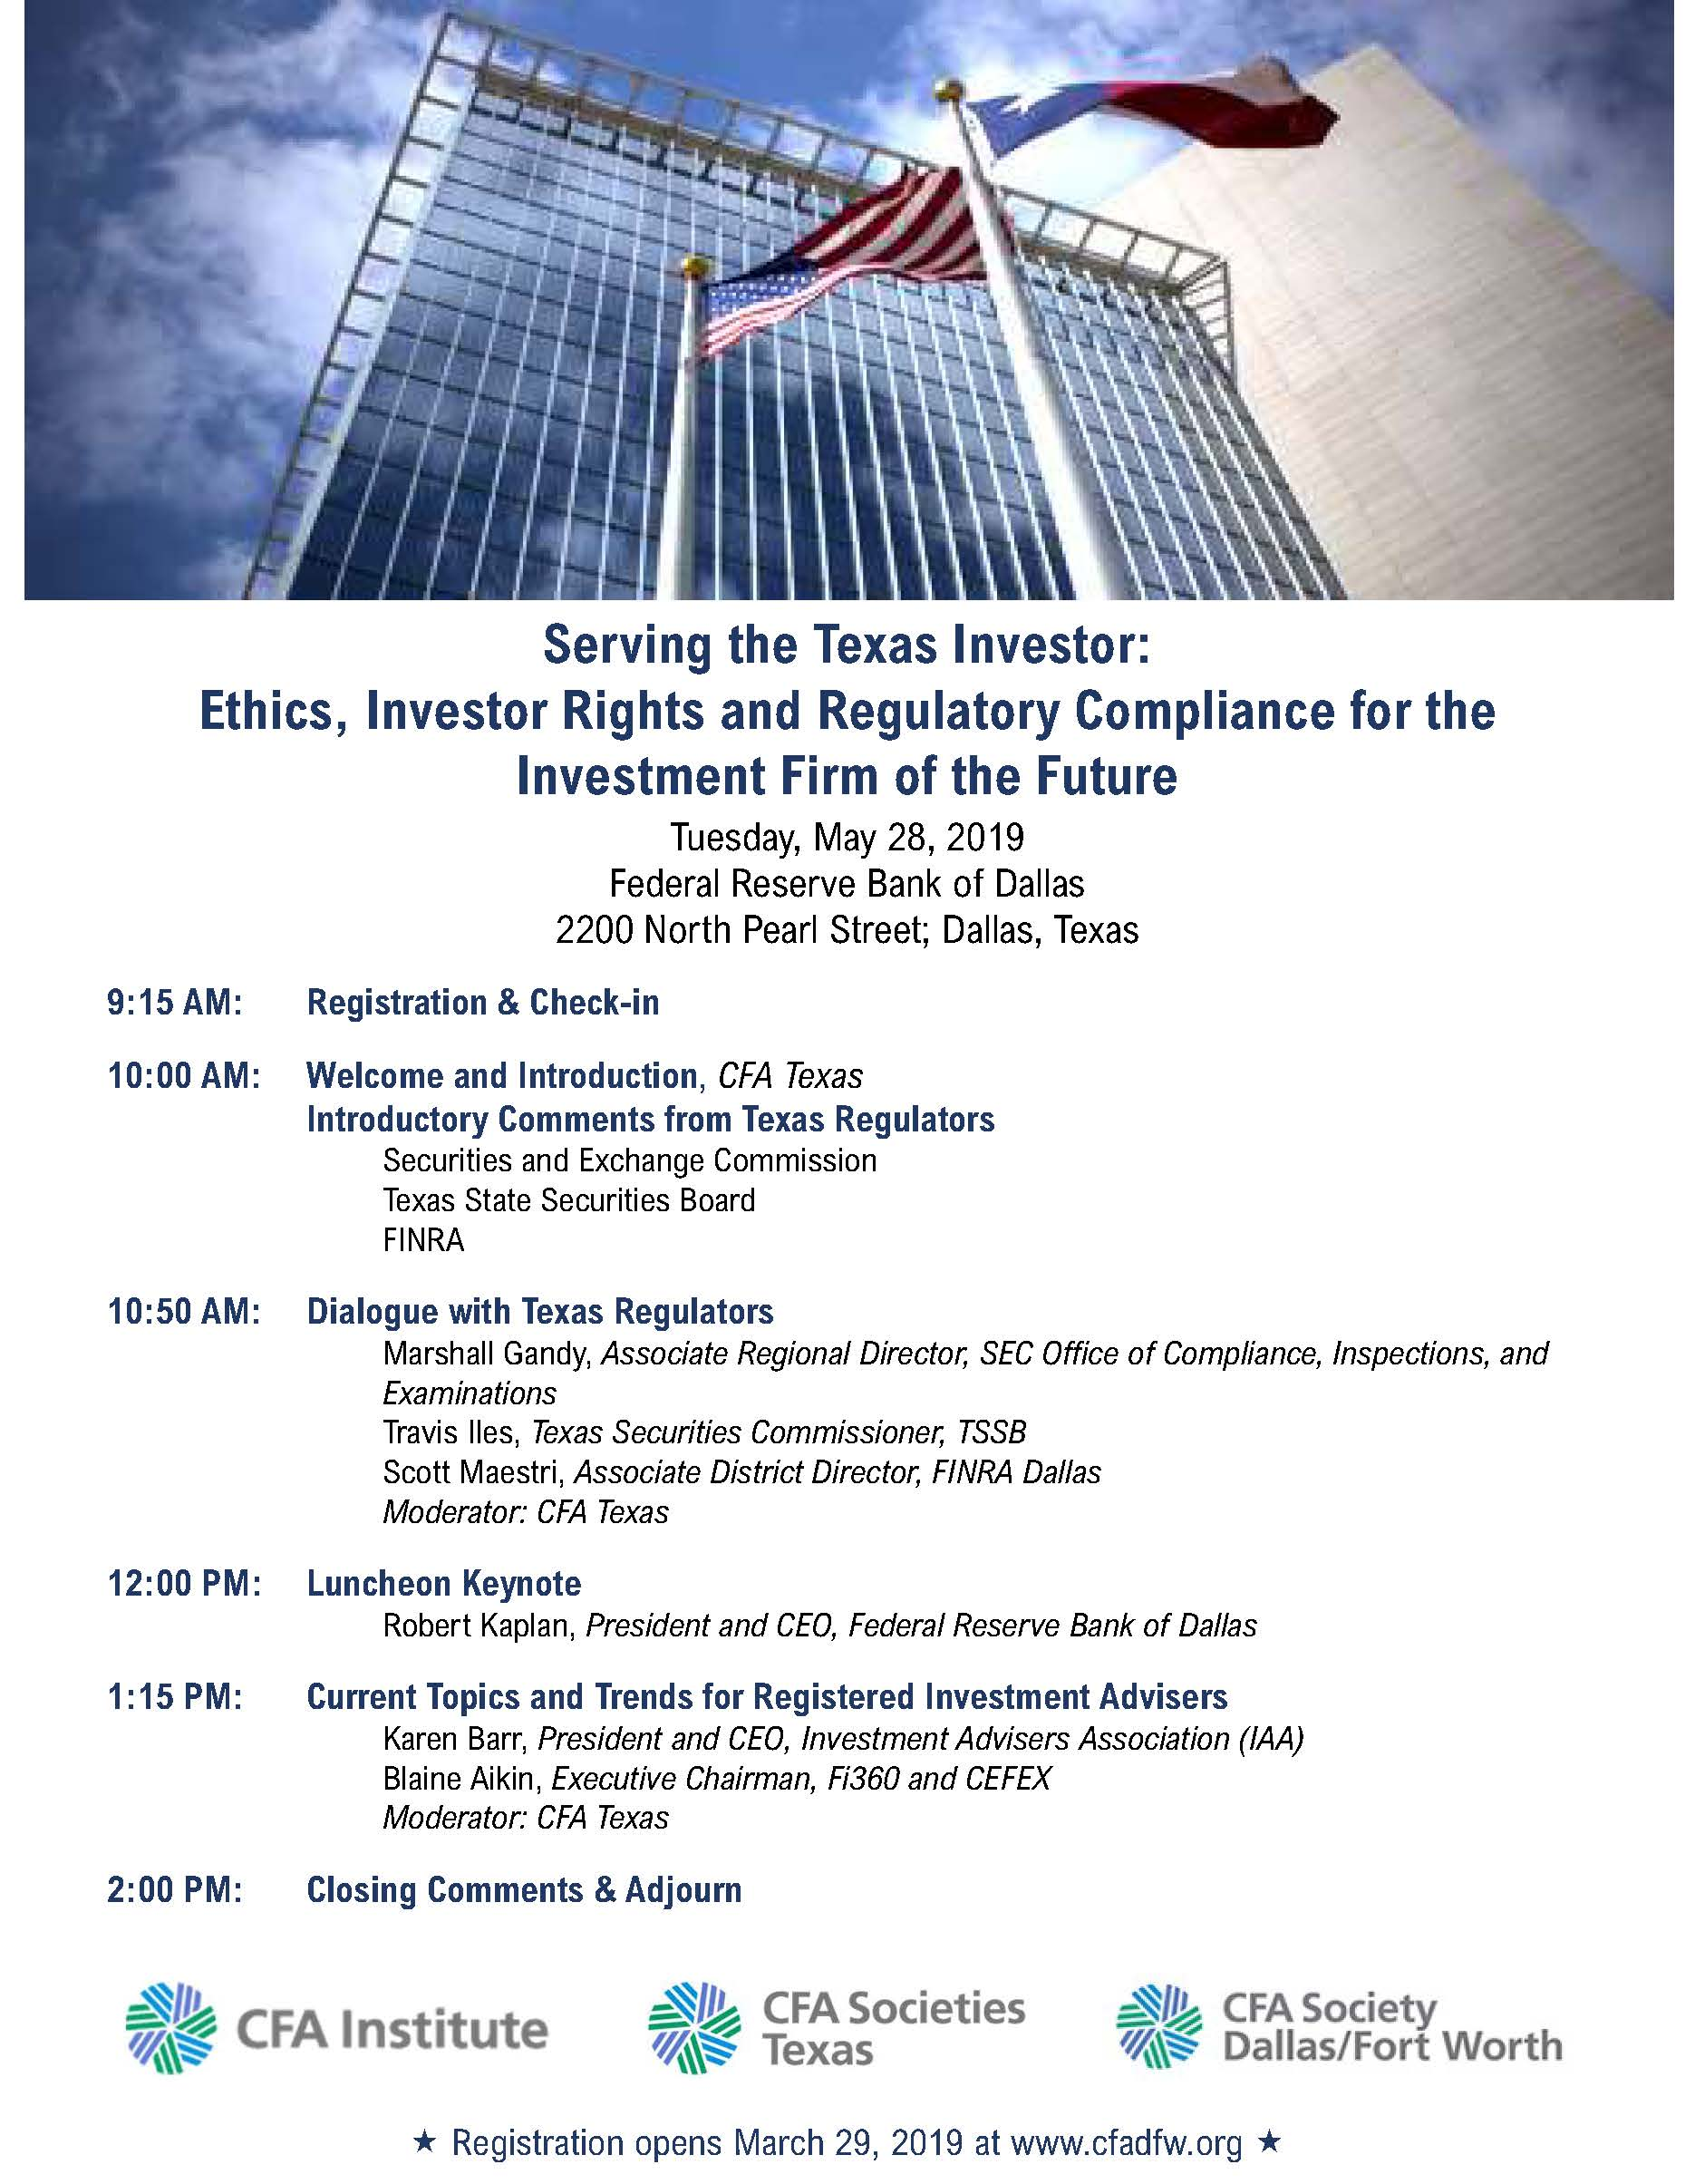 CFAT Putting Investors First event